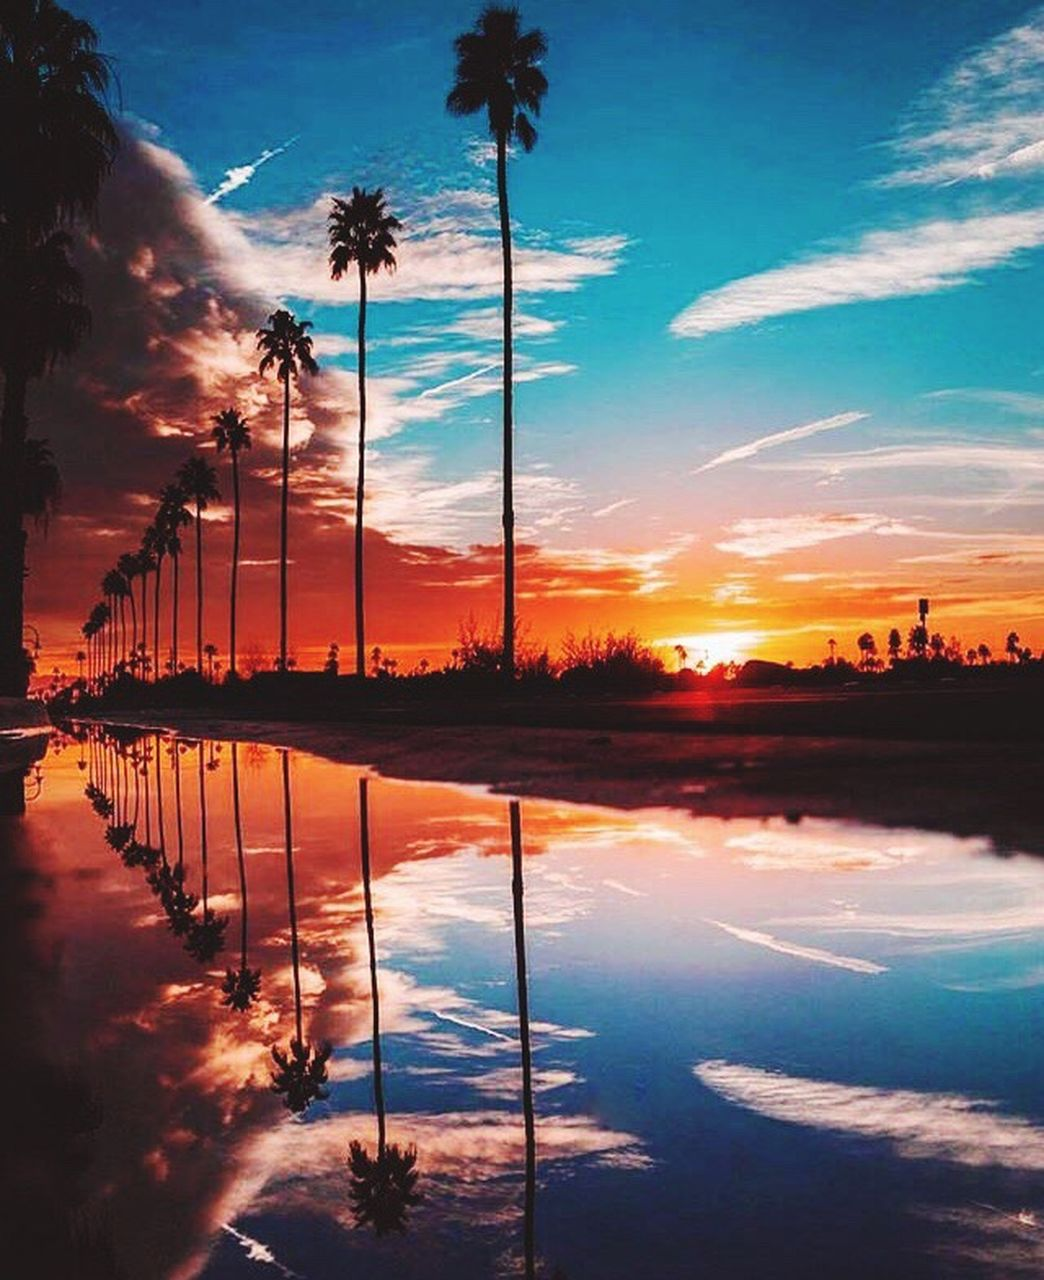 reflection, cloud - sky, sky, sunset, palm tree, water, silhouette, tree, scenics, outdoors, beauty in nature, no people, tranquil scene, nature, sunlight, lake, tranquility, blue, reflecting pool, travel destinations, dawn, multi colored, day